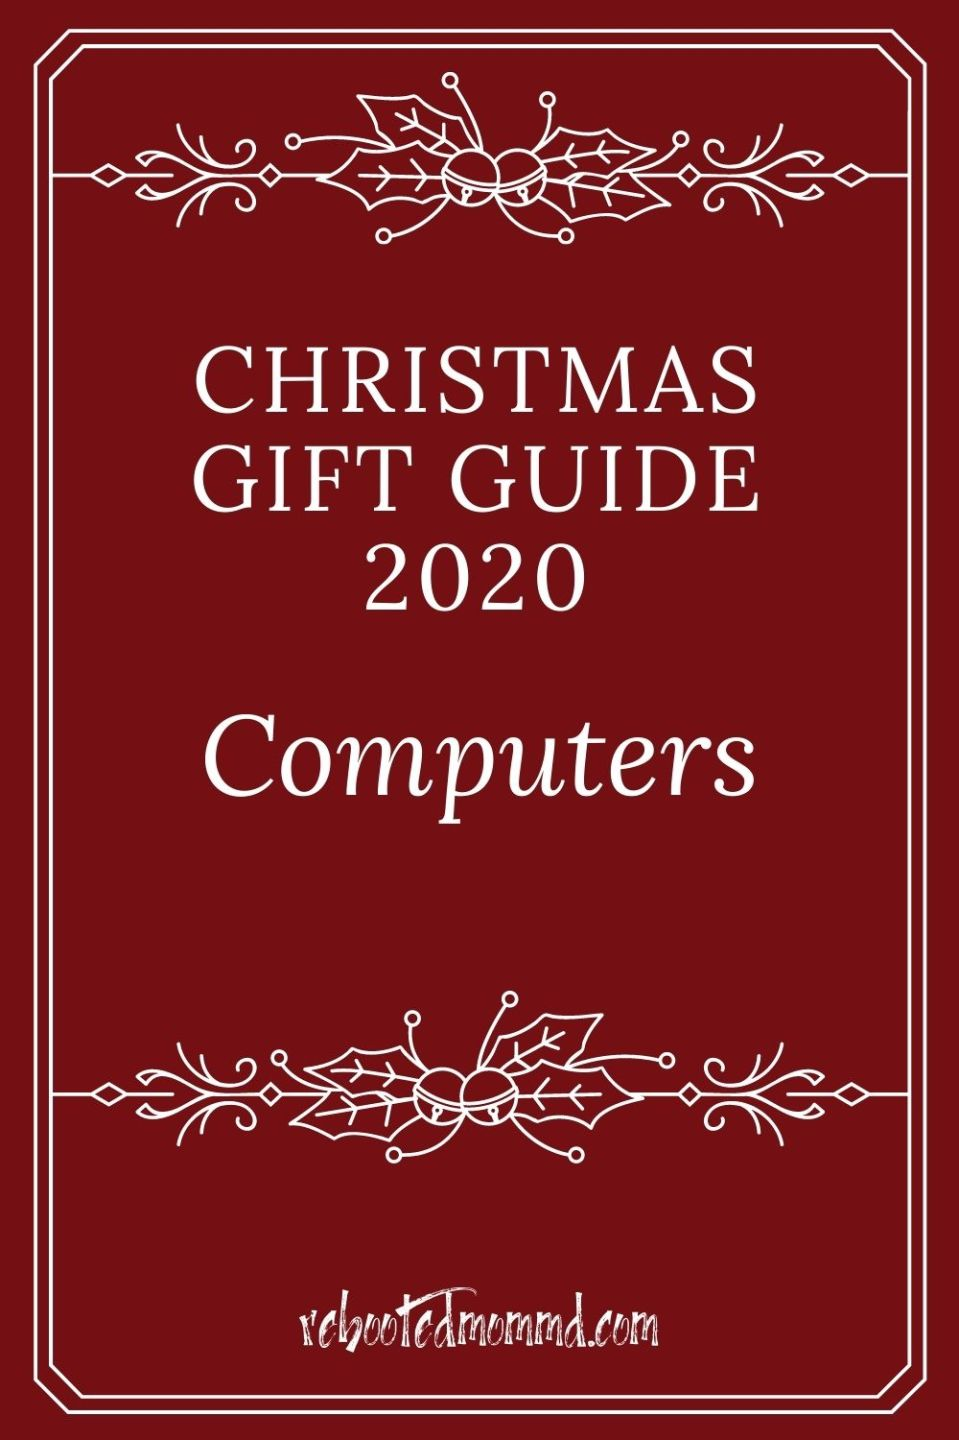 Christmas Gift Guide 2020: Computers